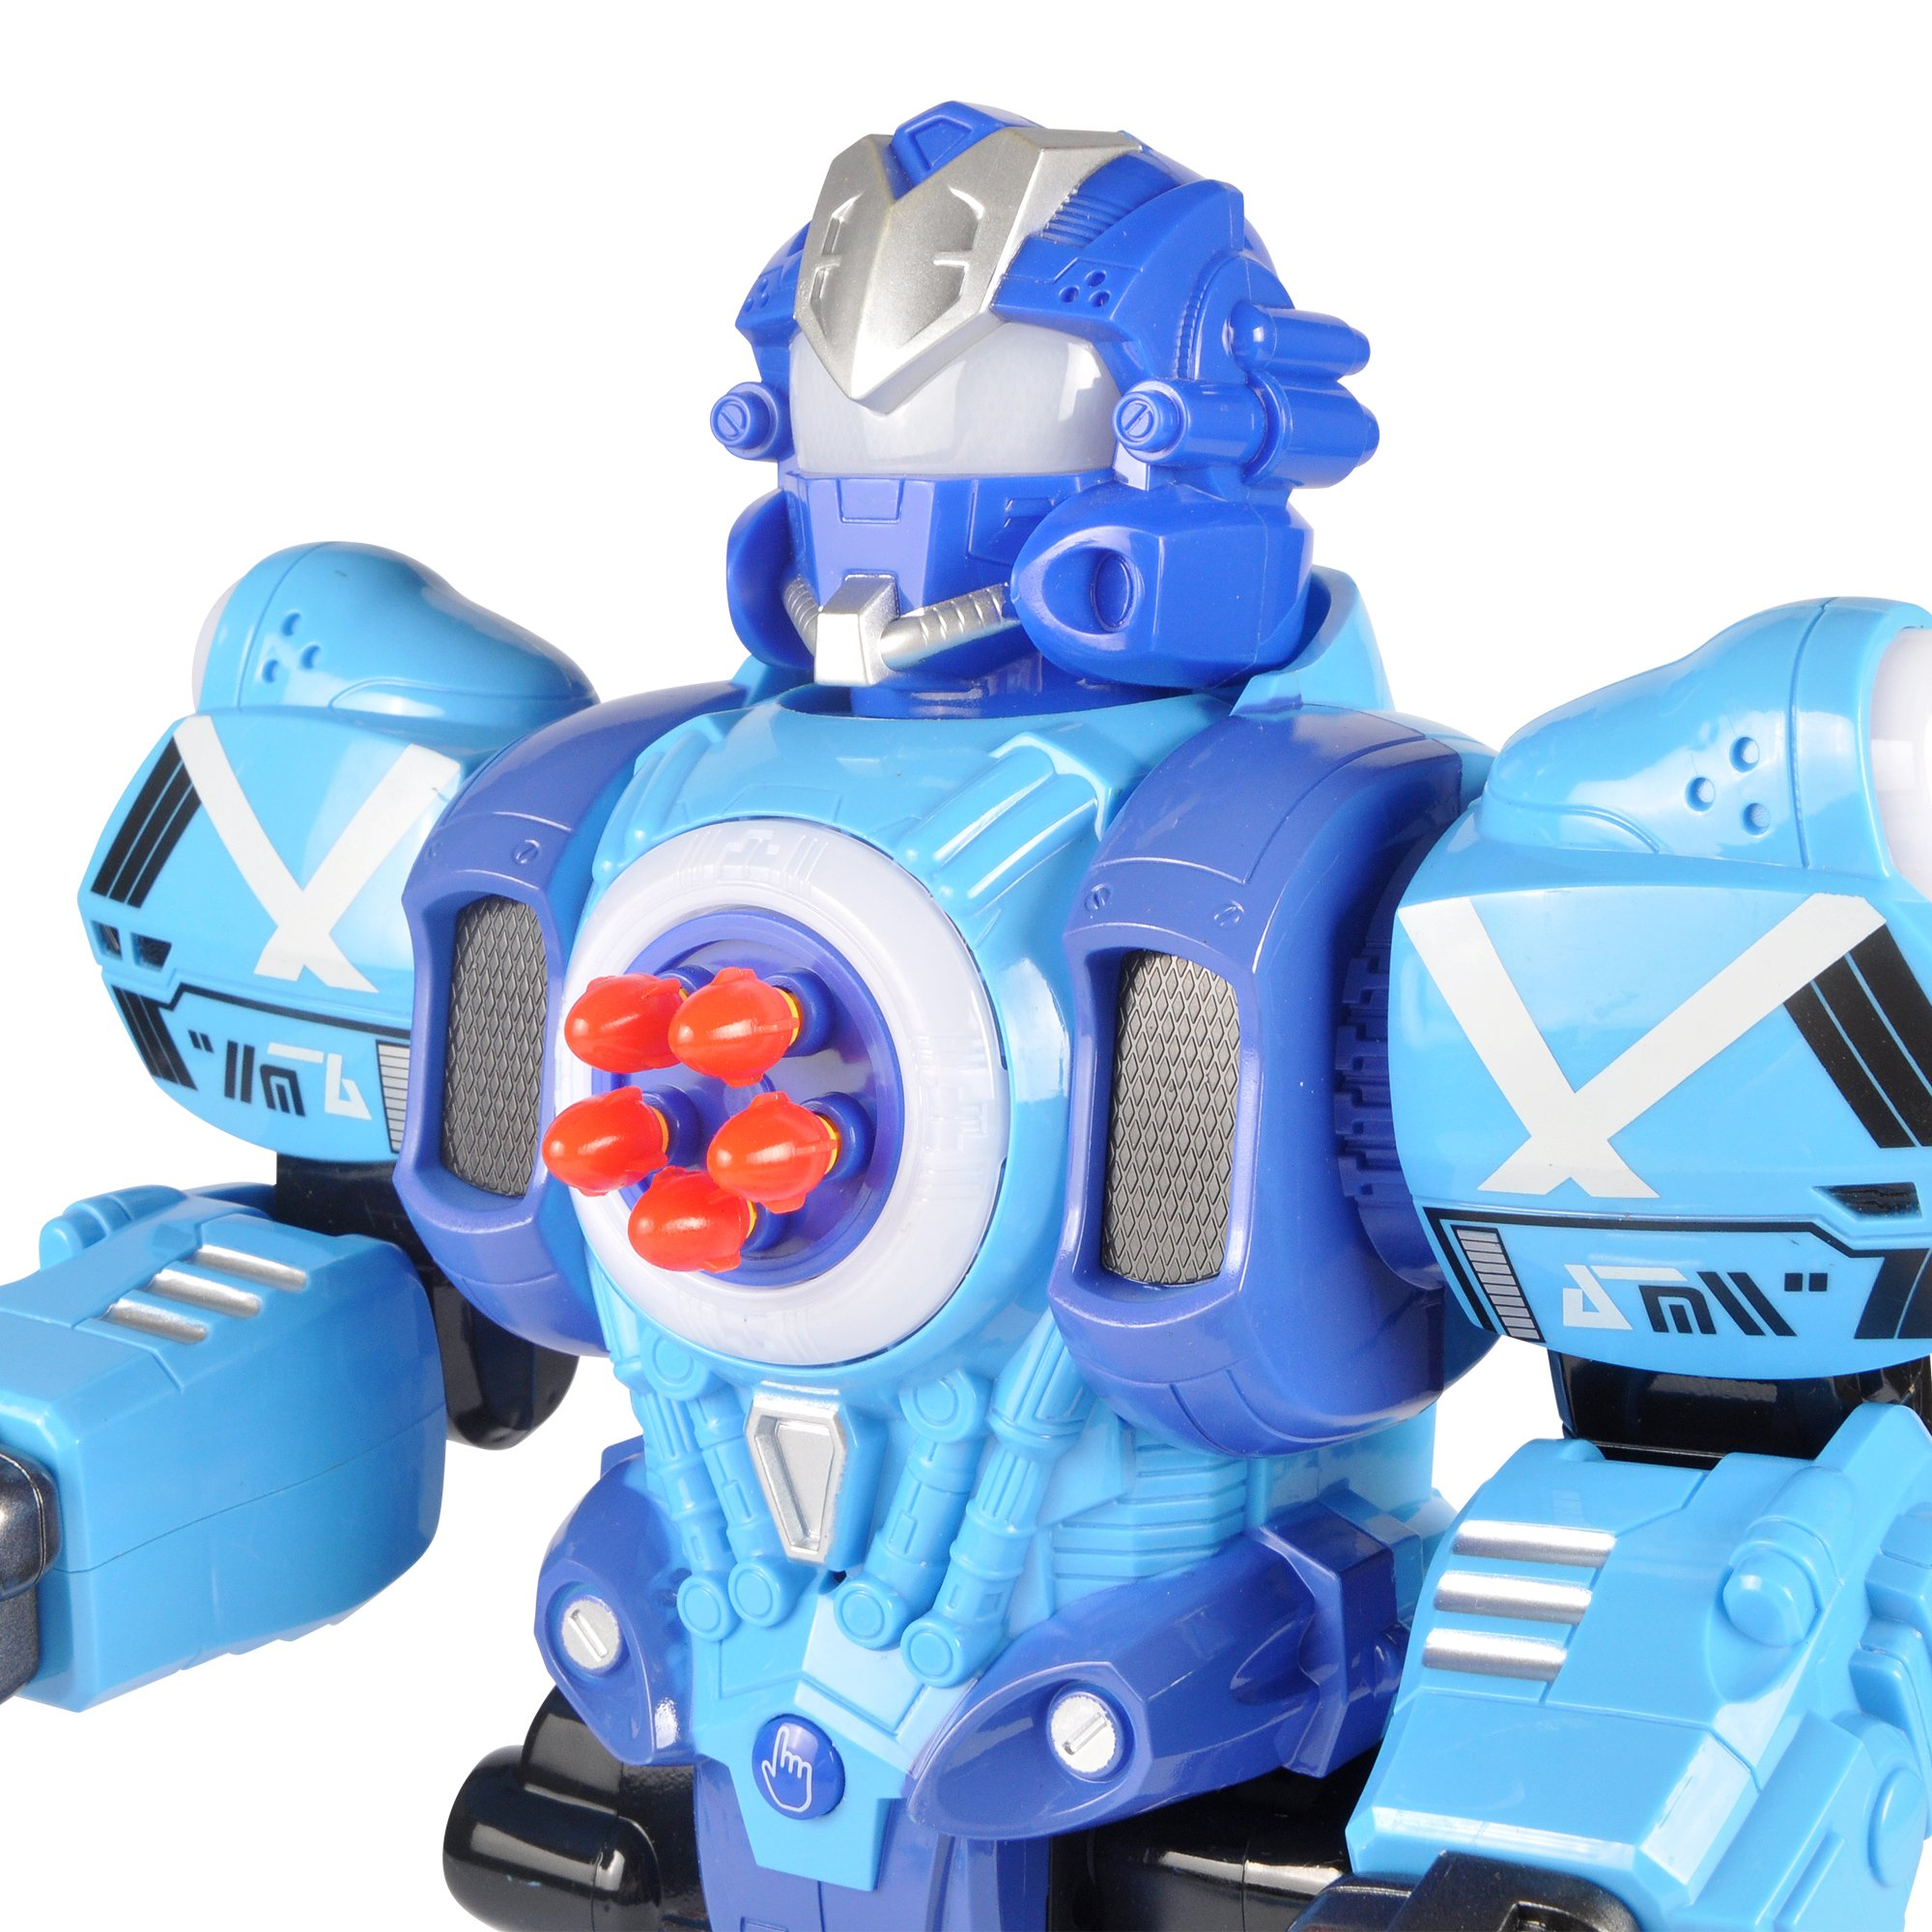 Liberty Imports Large Remote Control Robot Toy for Kids - RC Robot Shoots Darts, Walks, Talks, and Dances (10 Functions) by Liberty Imports (Image #3)